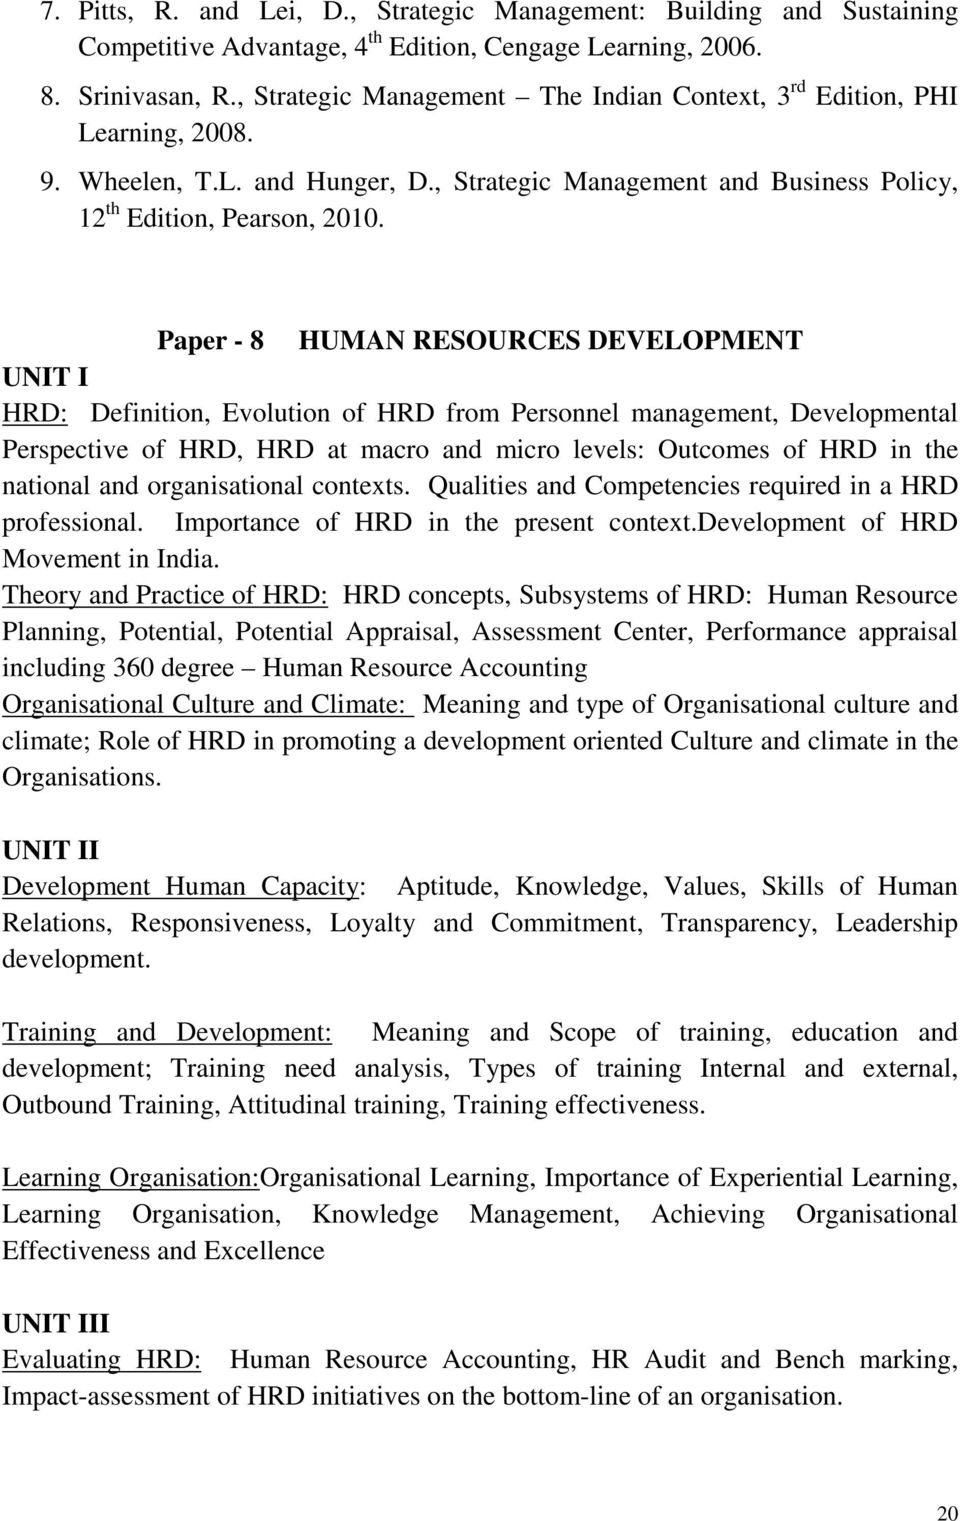 Paper - 8 HUMAN RESOURCES DEVELOPMENT UNIT I HRD: Definition, Evolution of HRD from Personnel management, Developmental Perspective of HRD, HRD at macro and micro levels: Outcomes of HRD in the